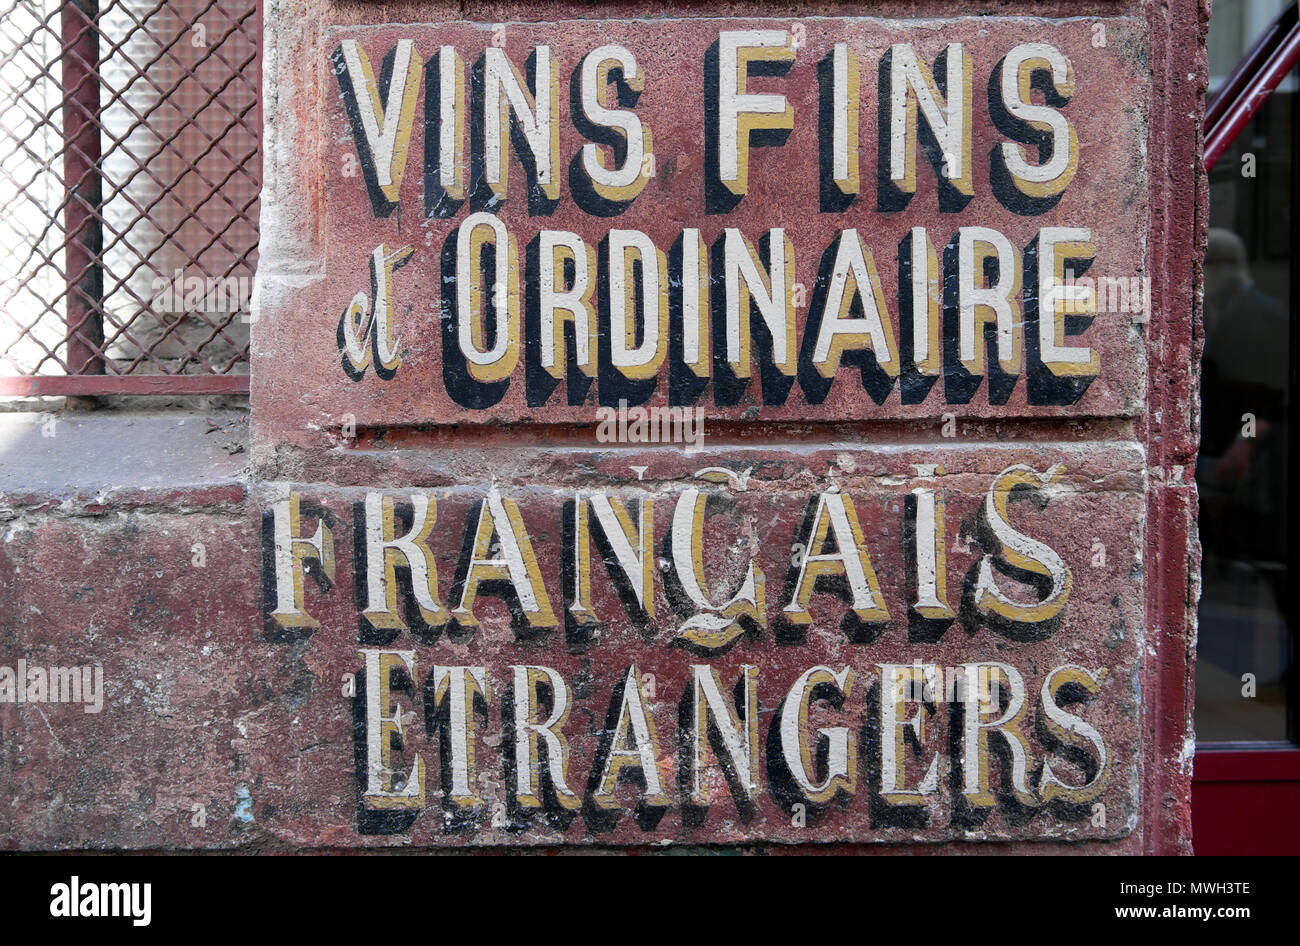 Old antique wine sign in French language on the side of a building 'Vins Fins et Ordinaire, Francais Etrangers' in Paris, France   KATHY DEWITT - Stock Image